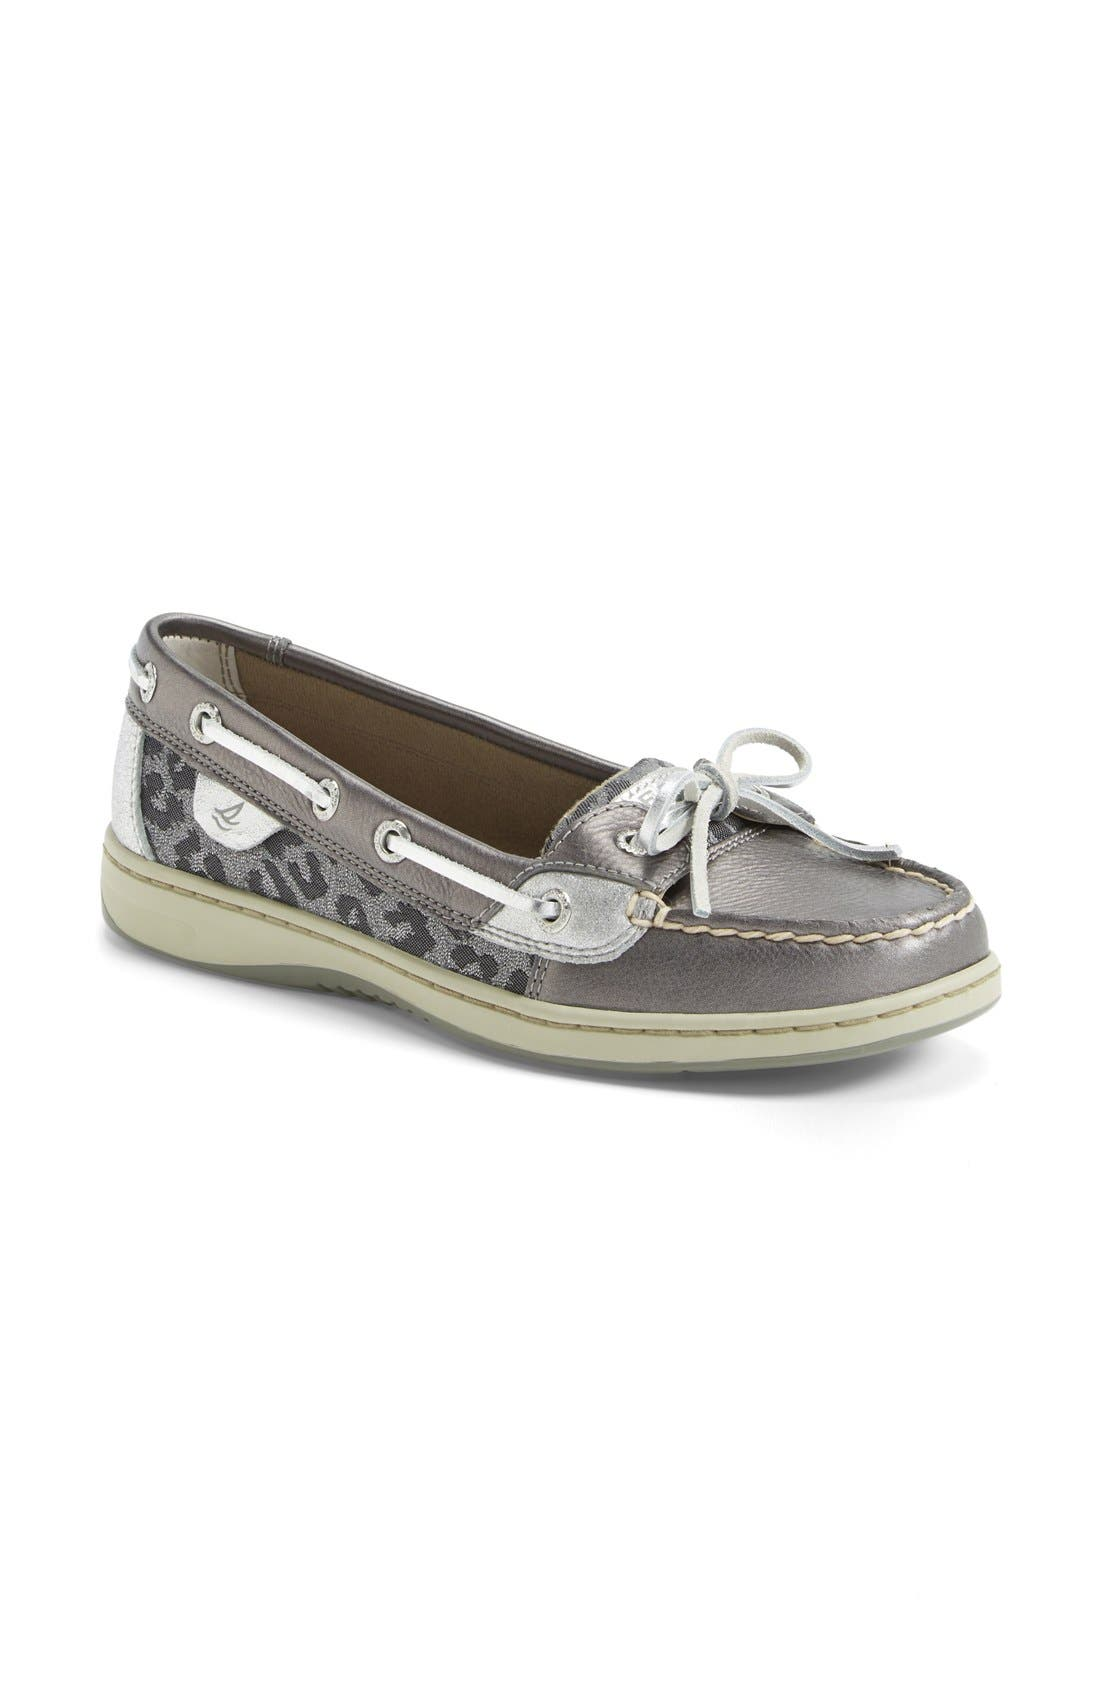 Alternate Image 2  - Sperry 'Angelfish' Boat Shoe